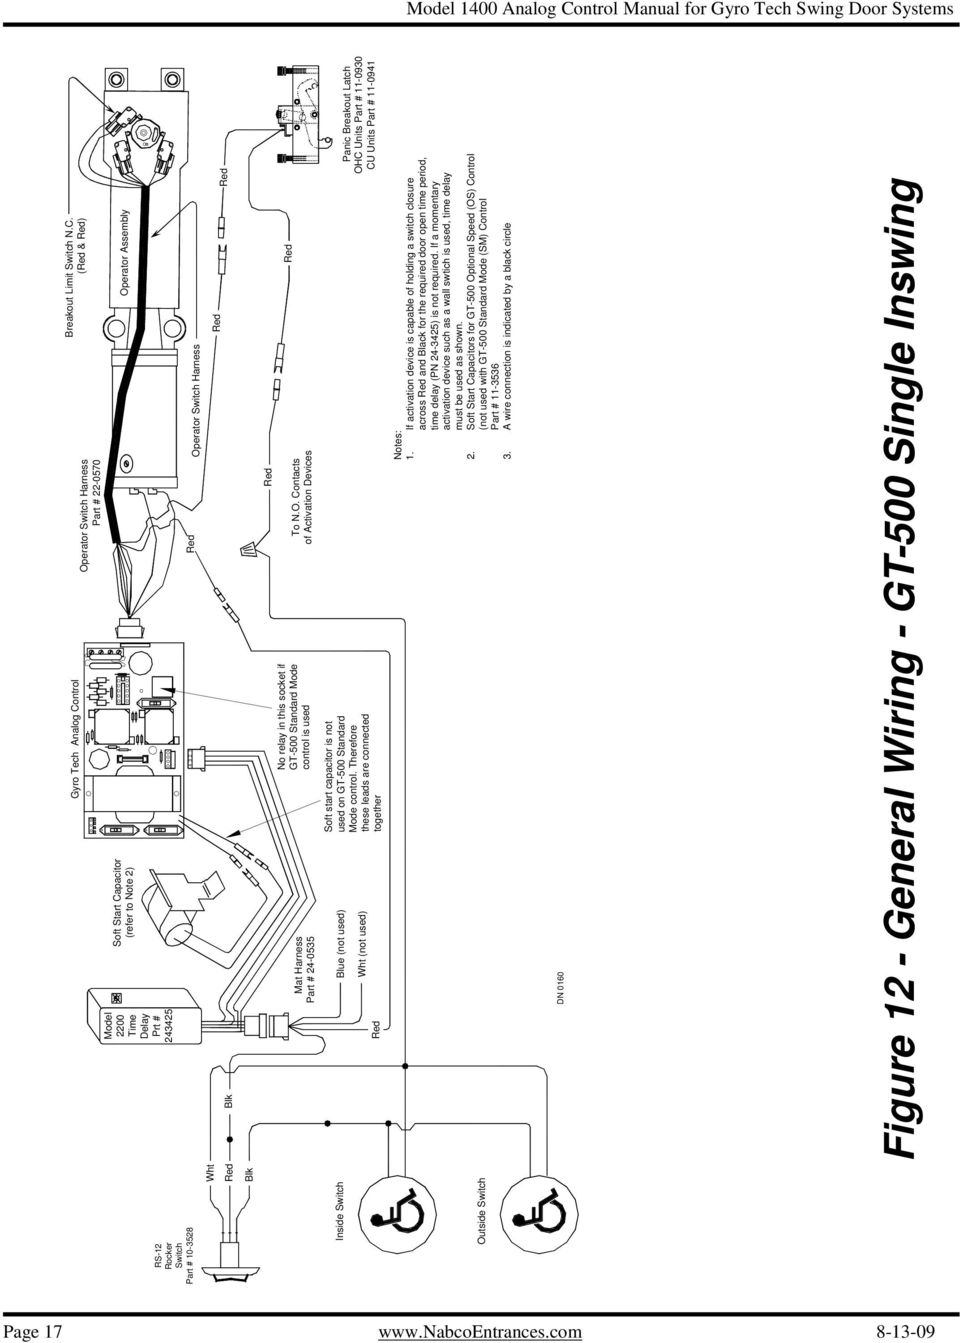 Analog Control Wiring Adjustment Manual For Gyro Tech Swing Door Lead Type Limit Switch Diagram Therefore These Leads Are Connected Together Panic Breakout Latch Ohc Units Part 11 0930